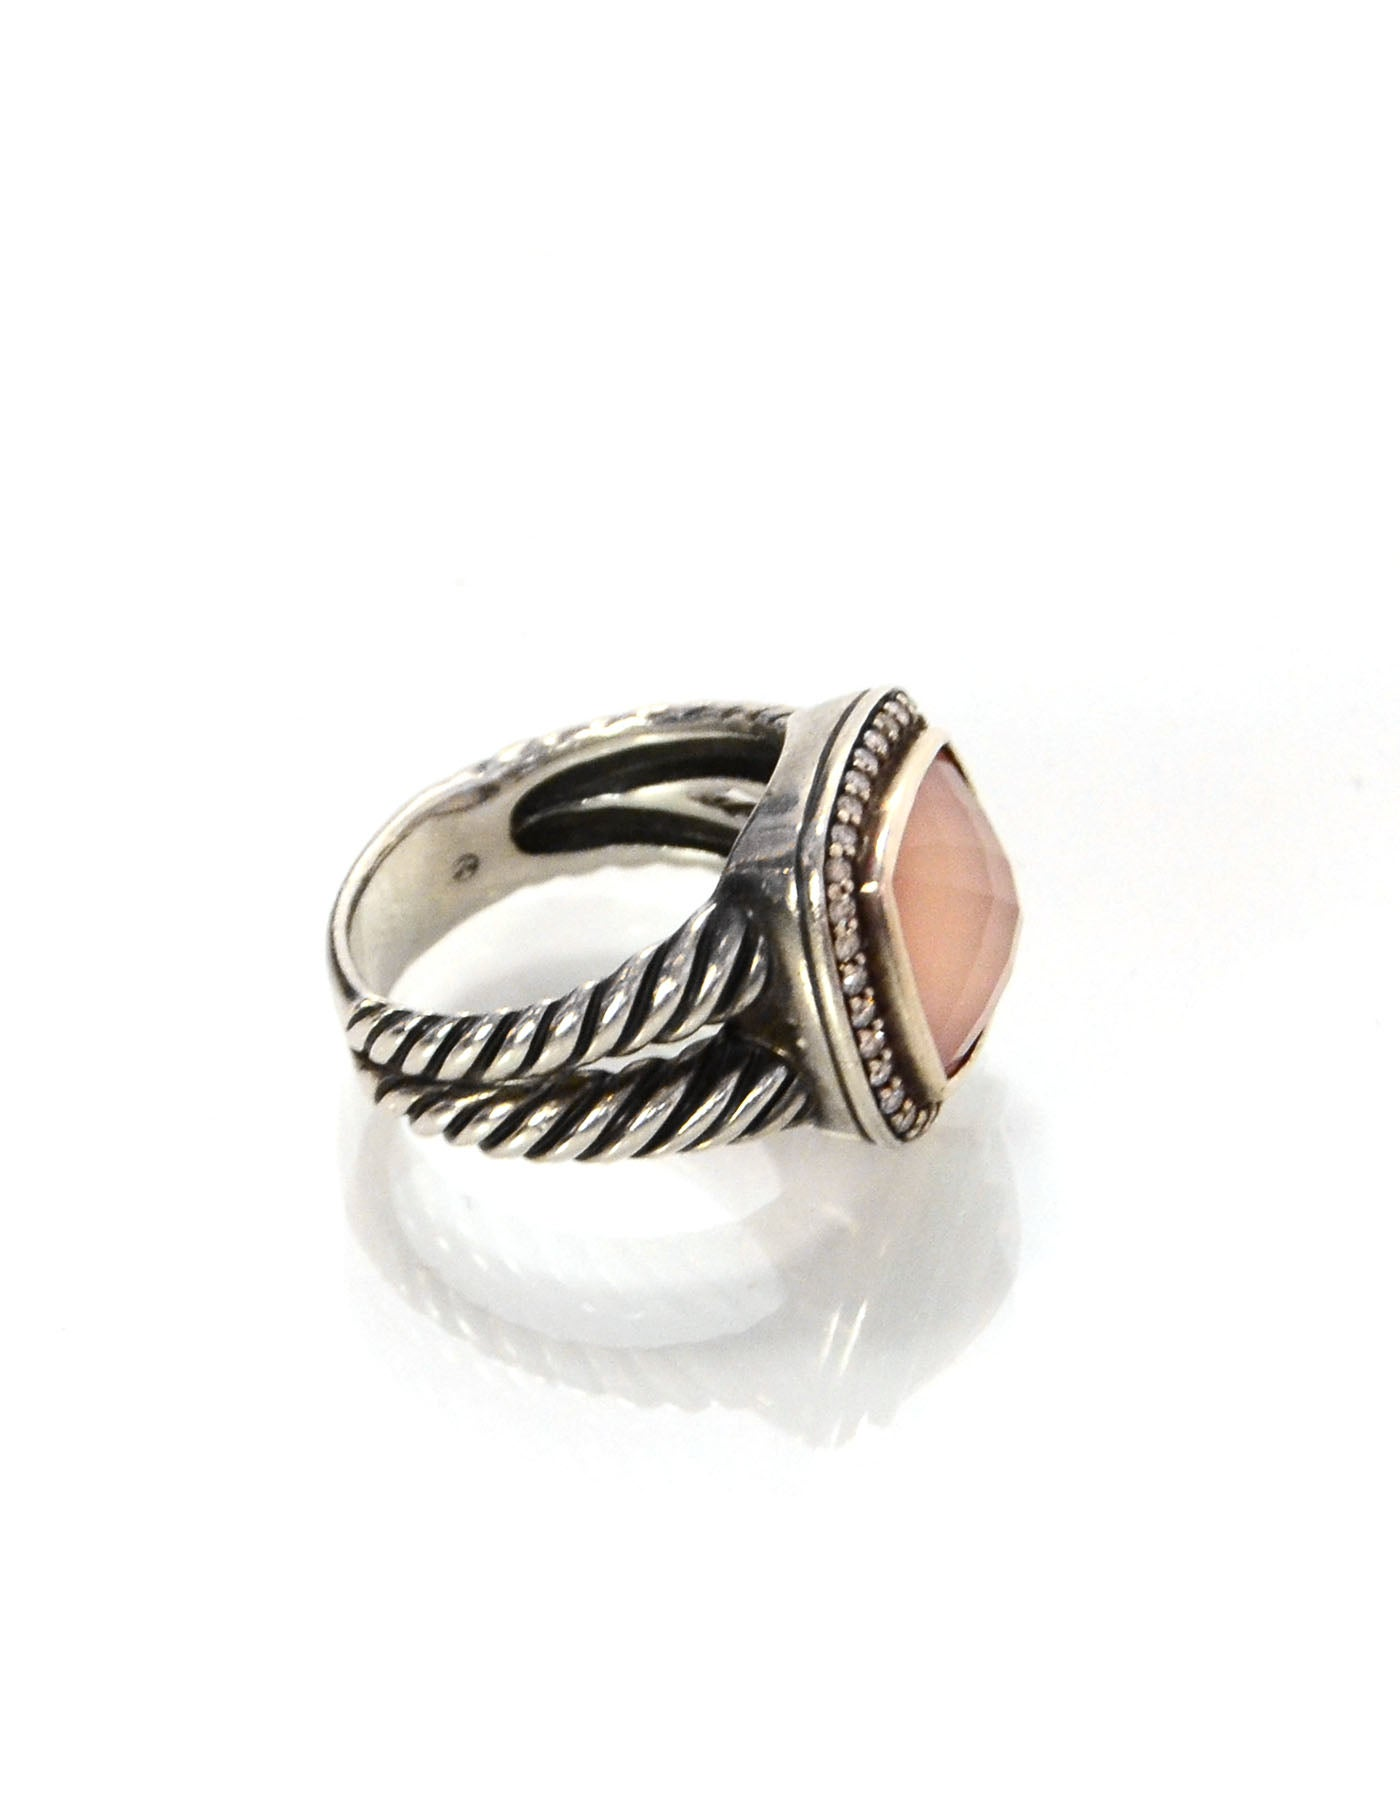 neiman onyx quick ring look david mz th marcus black yurman rings